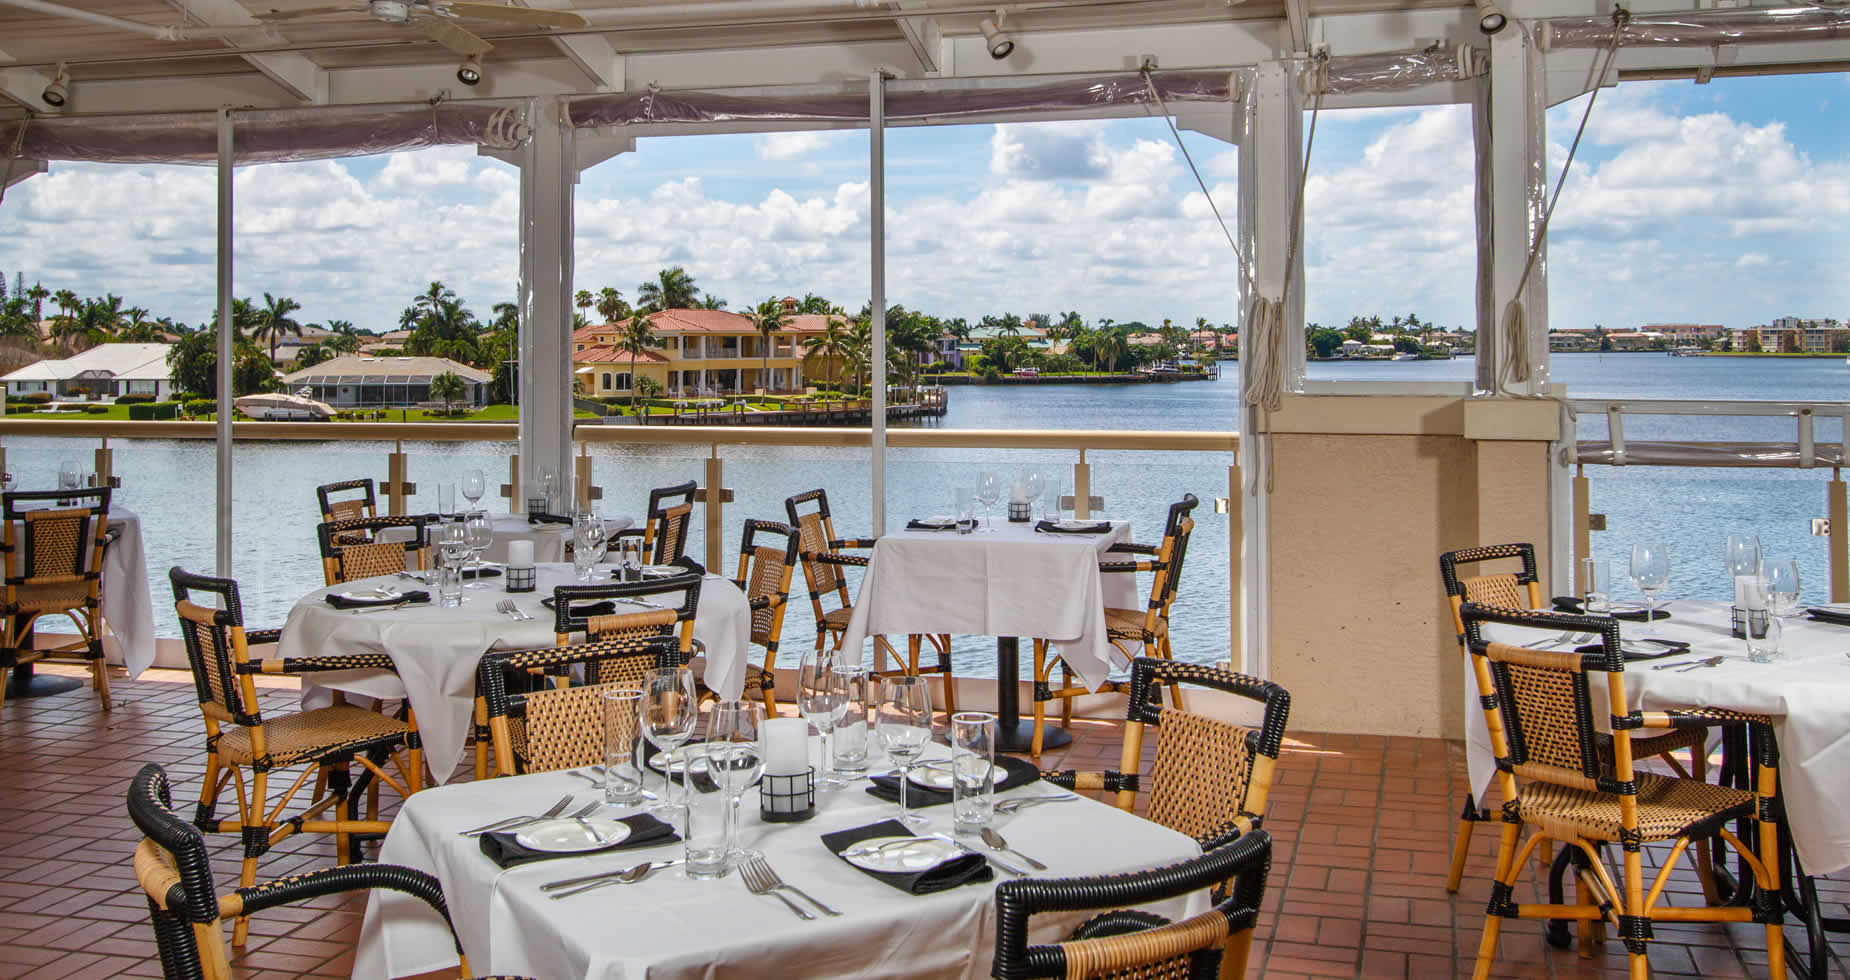 View from Covered Tables on Bayside's Upper Deck